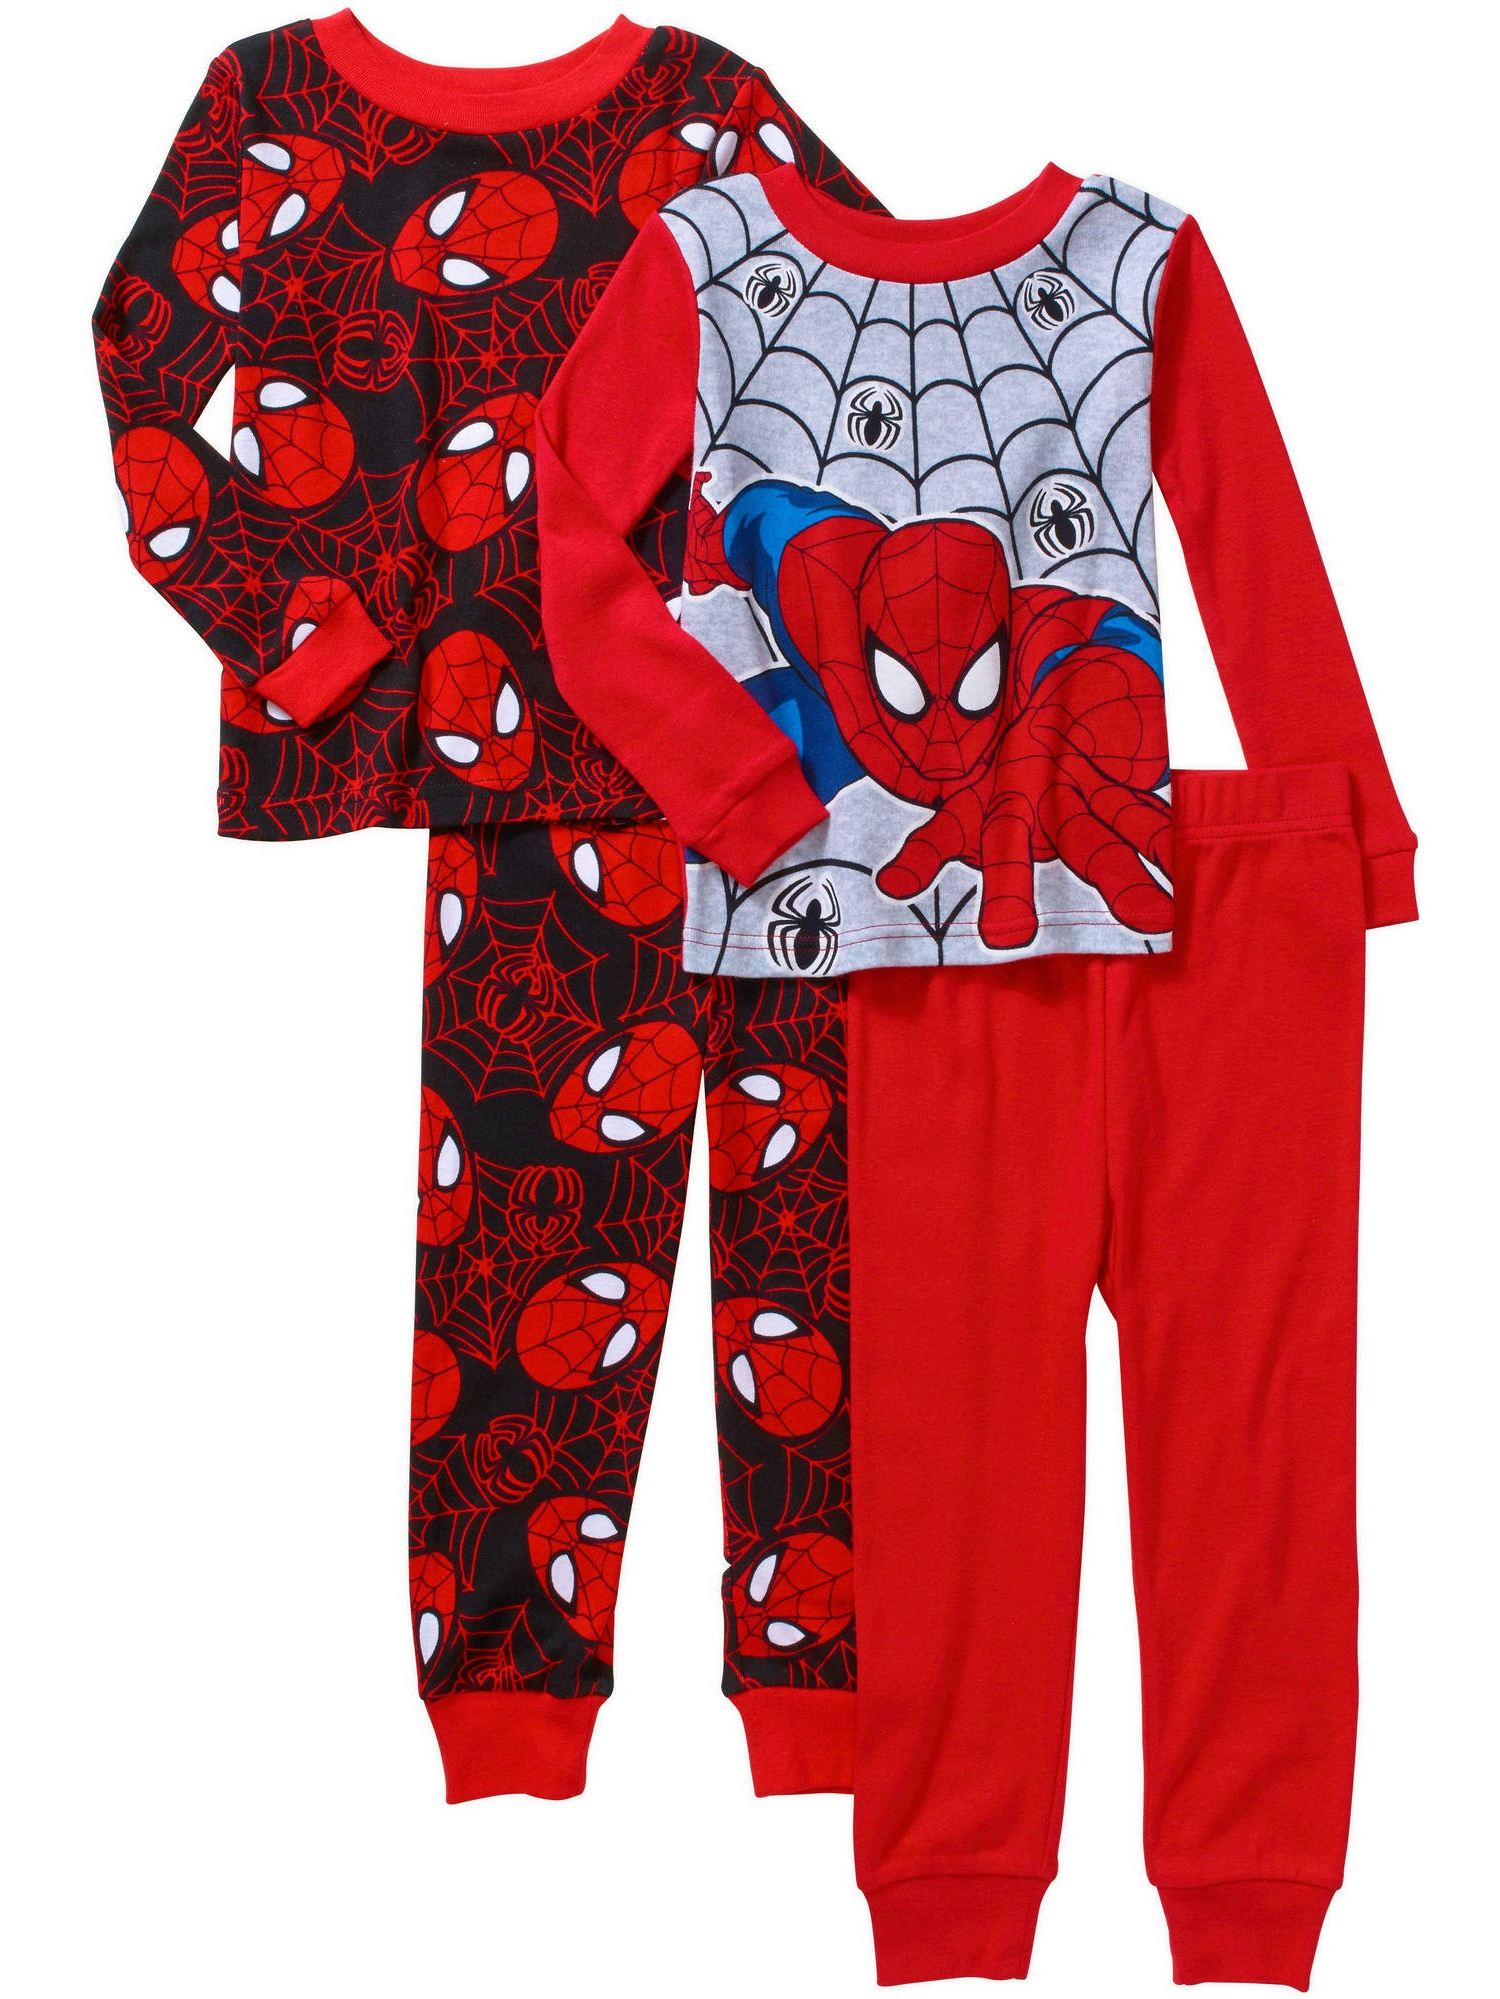 3739c9efd Spider-Man - Baby Toddler Boy Cotton Tight-Fit Pajamas